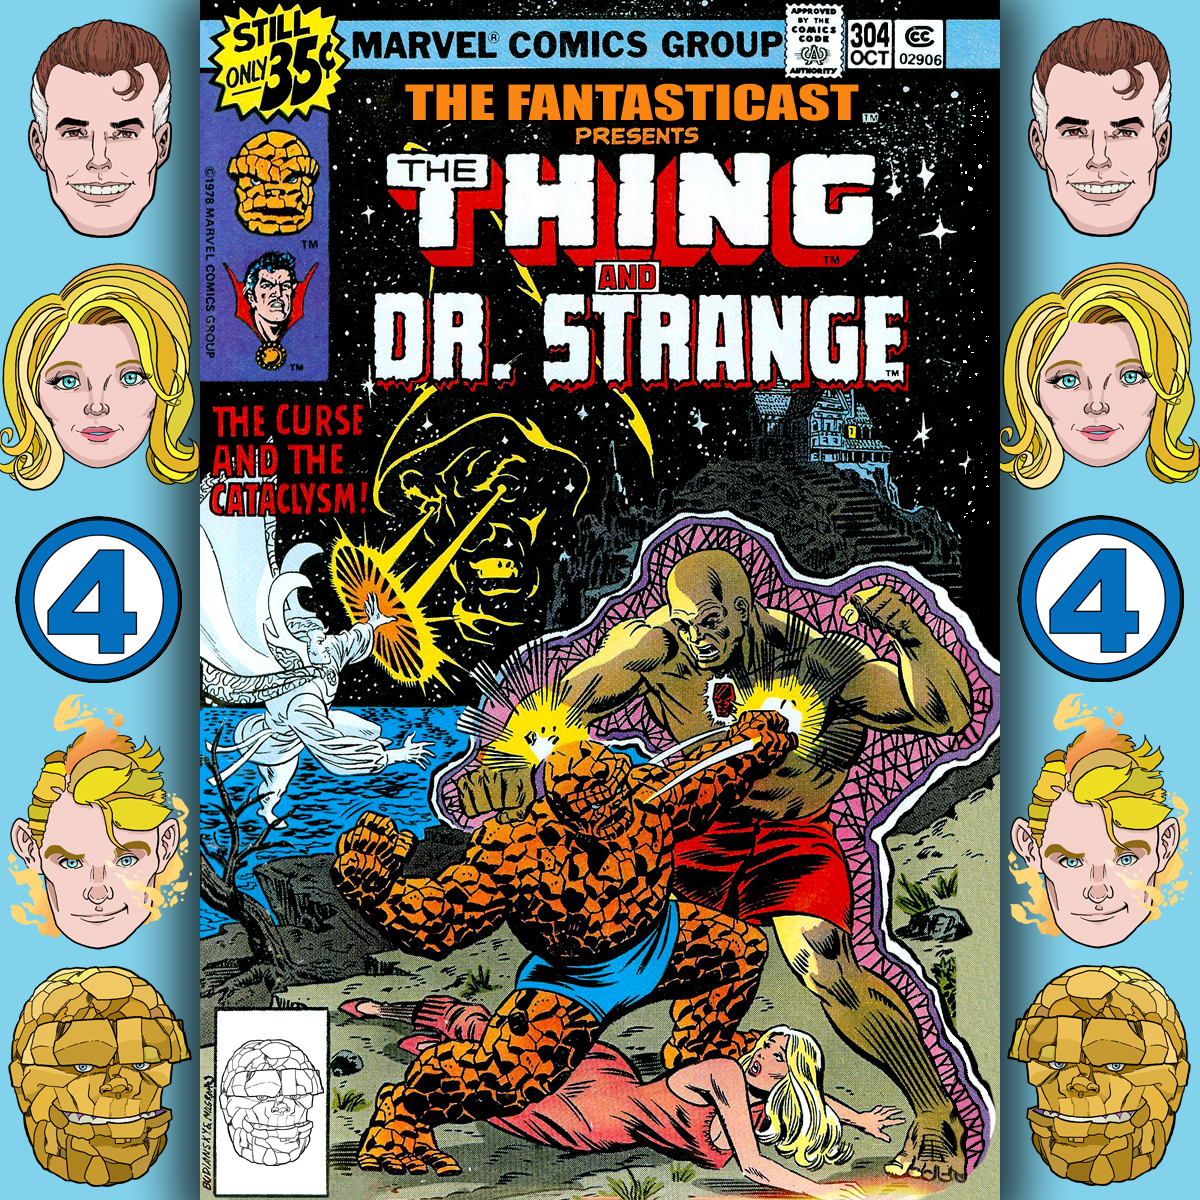 The Fantasticast Episode 303